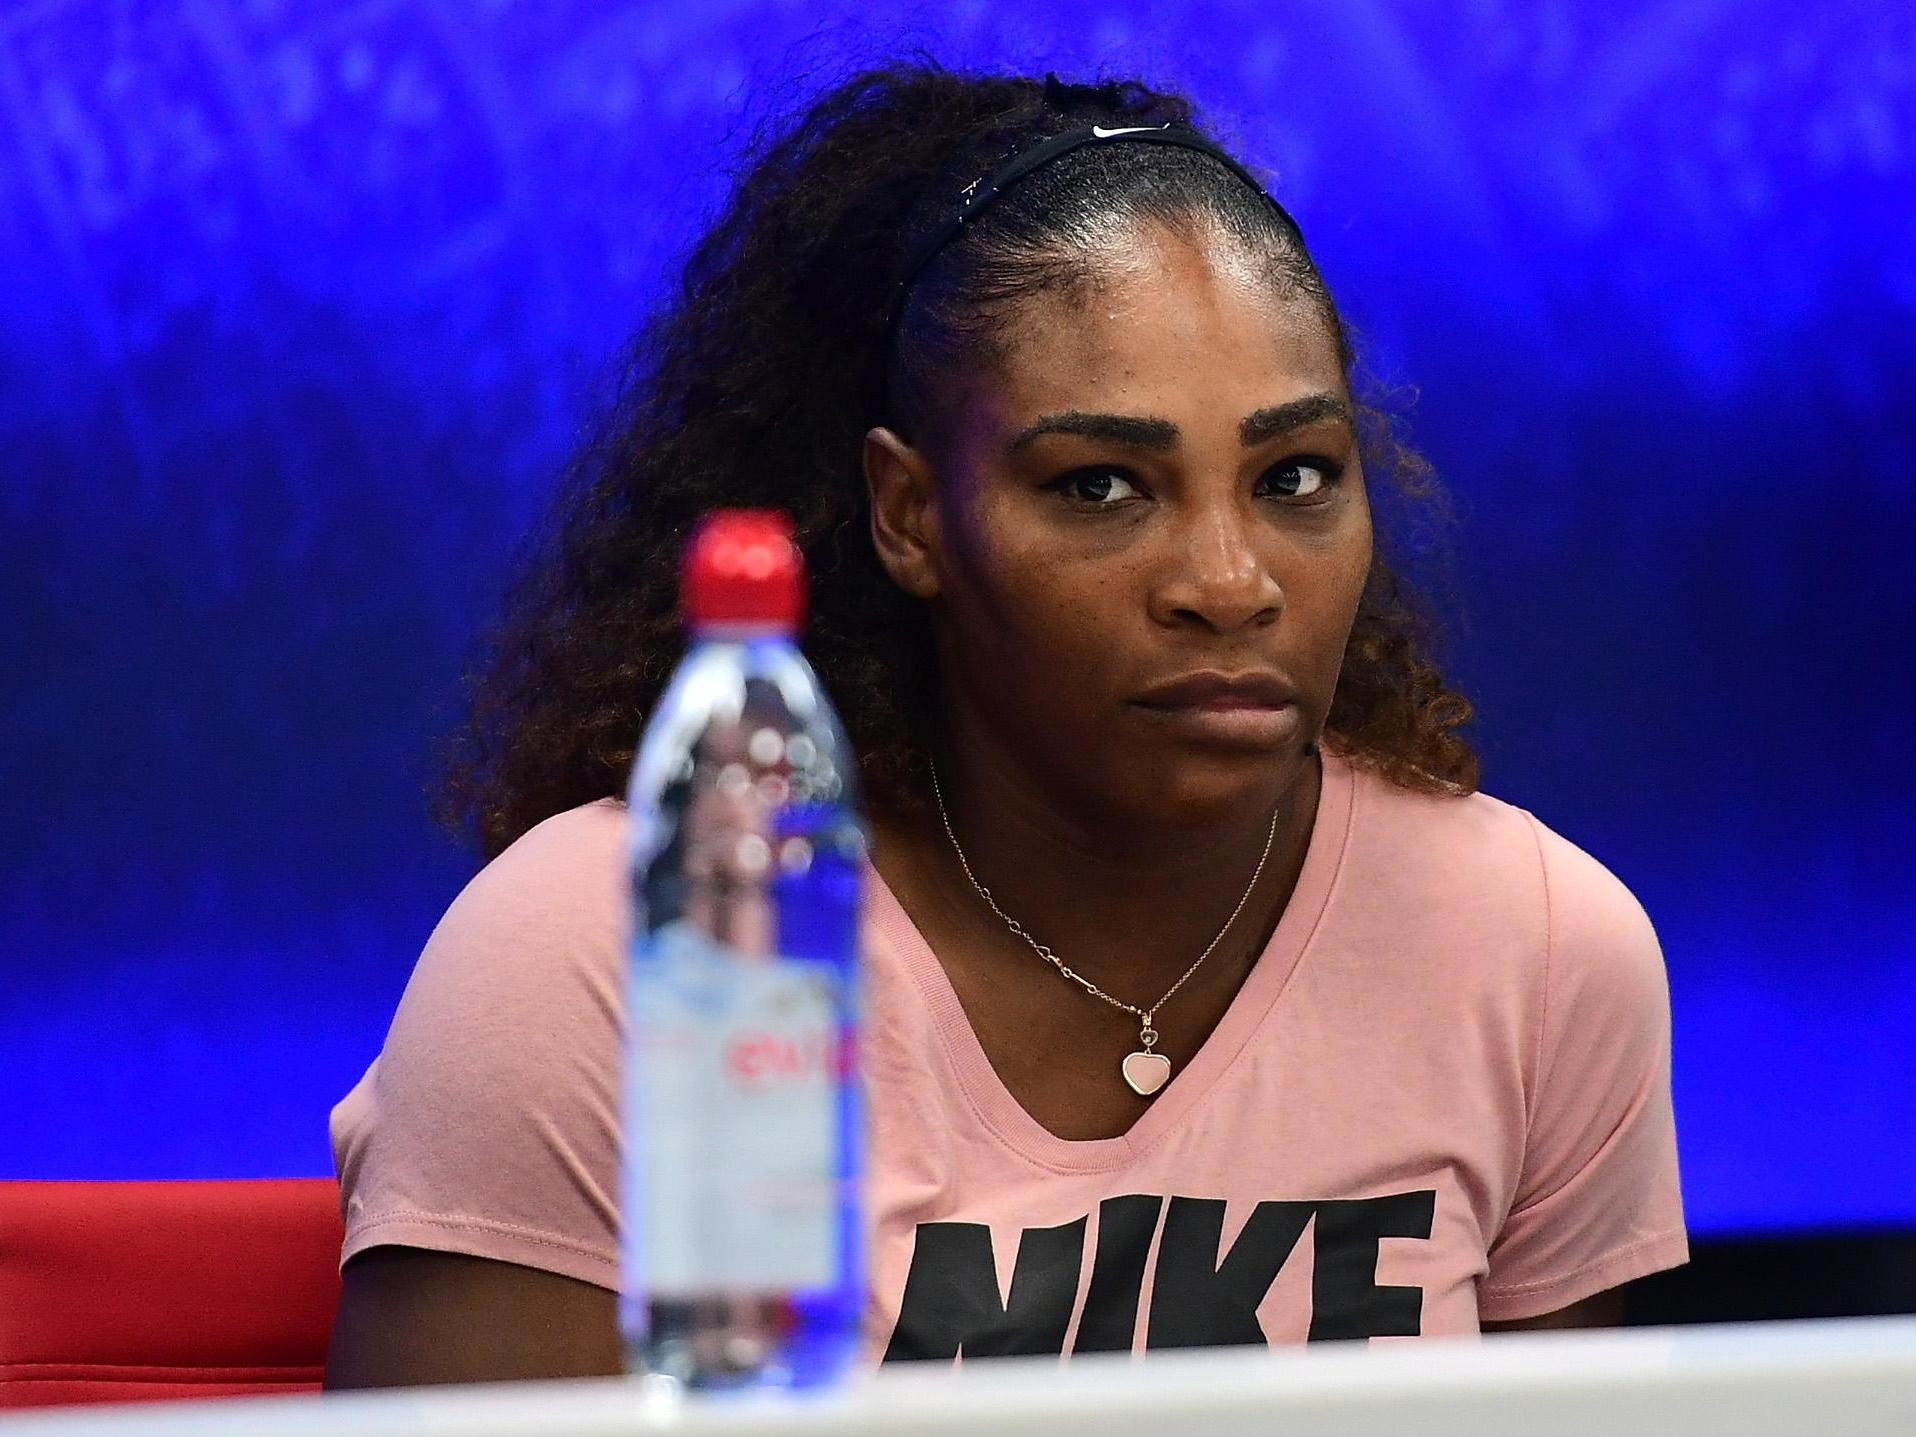 Australian Open 2019: Serena Williams confirmed entrant as she chases 24th grand slam title